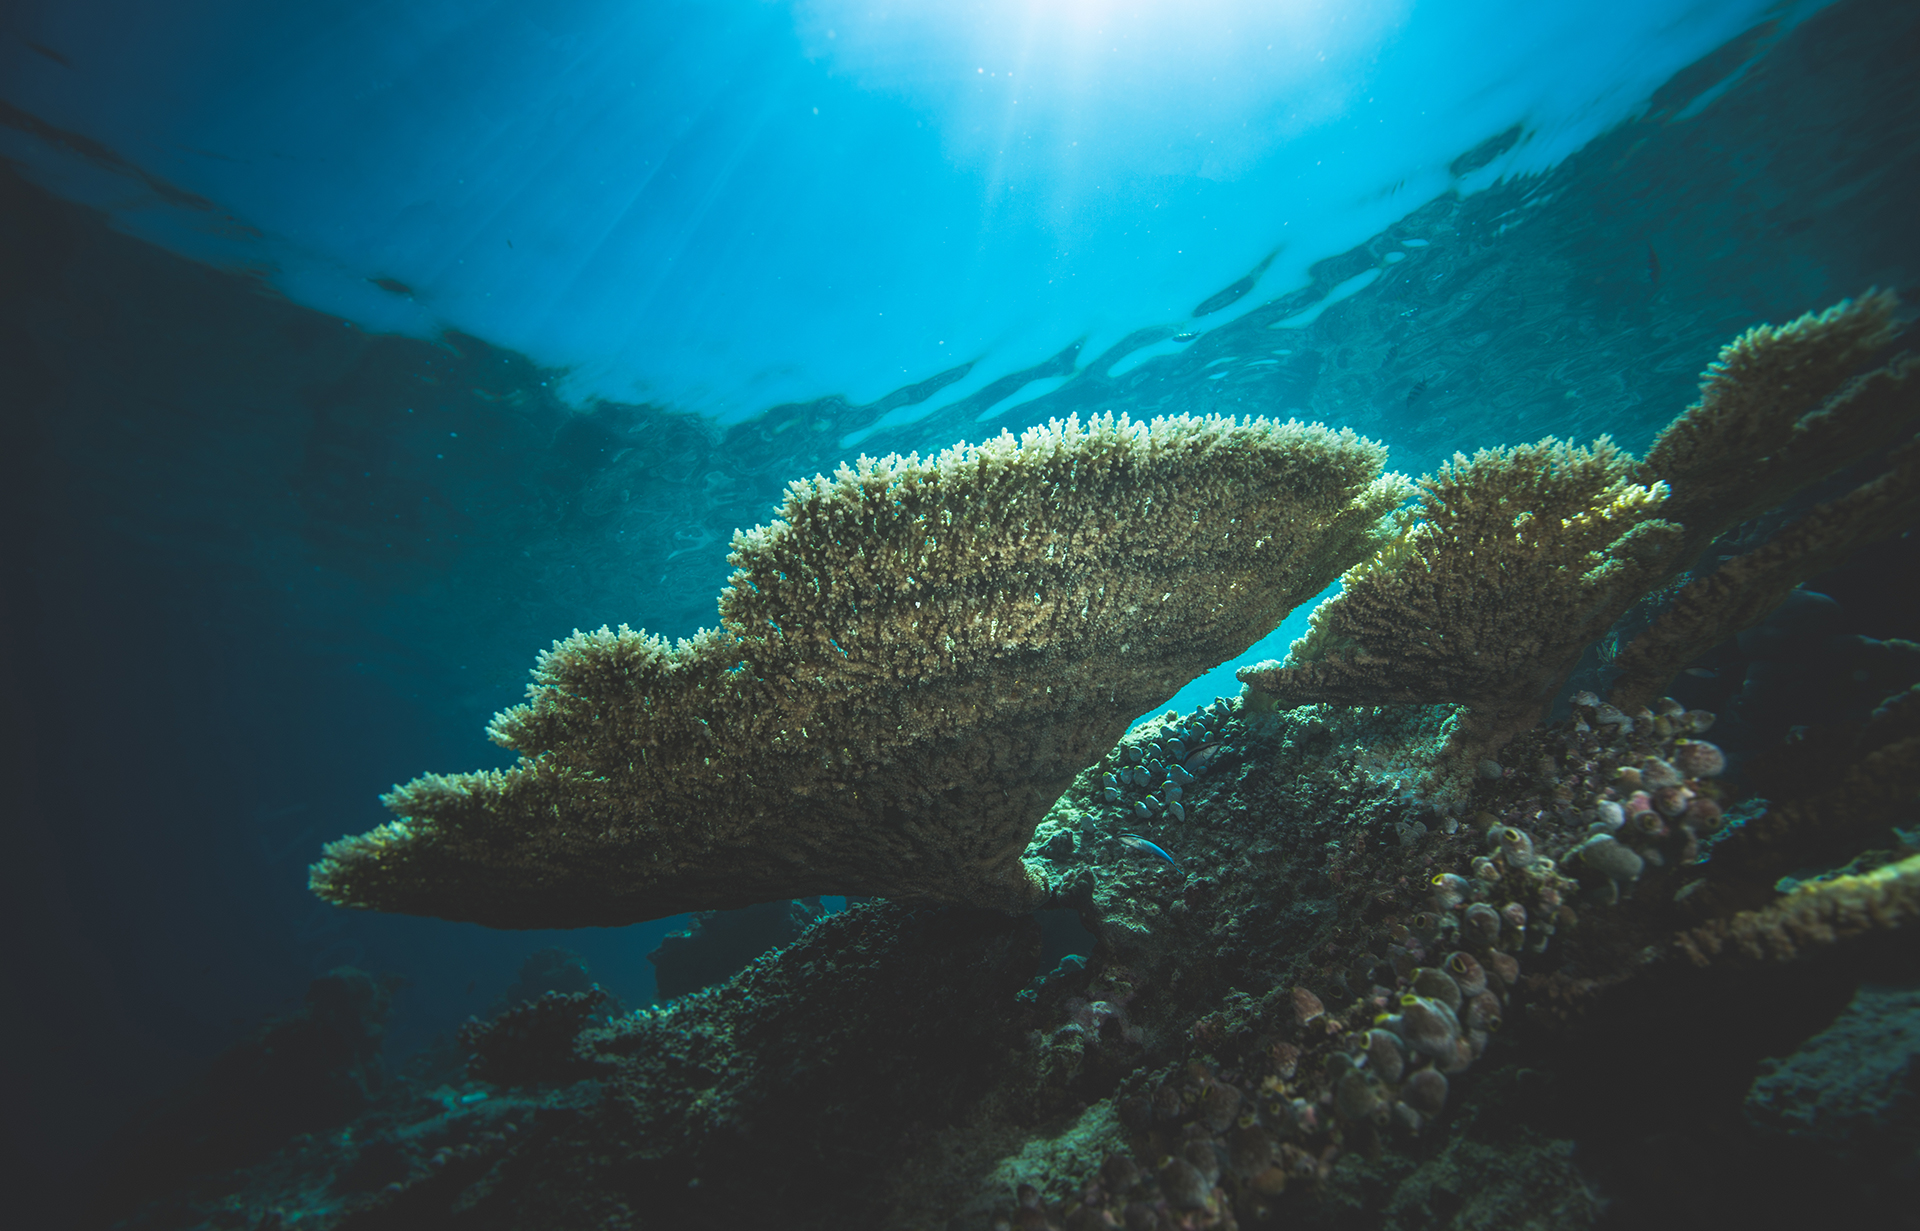 Almost all corals, like this table coral, are found fairly close to the surface. Corals contain algae that live symbiotically with them; algae need sunlight for photosynthesis, and in turn feed the coral.